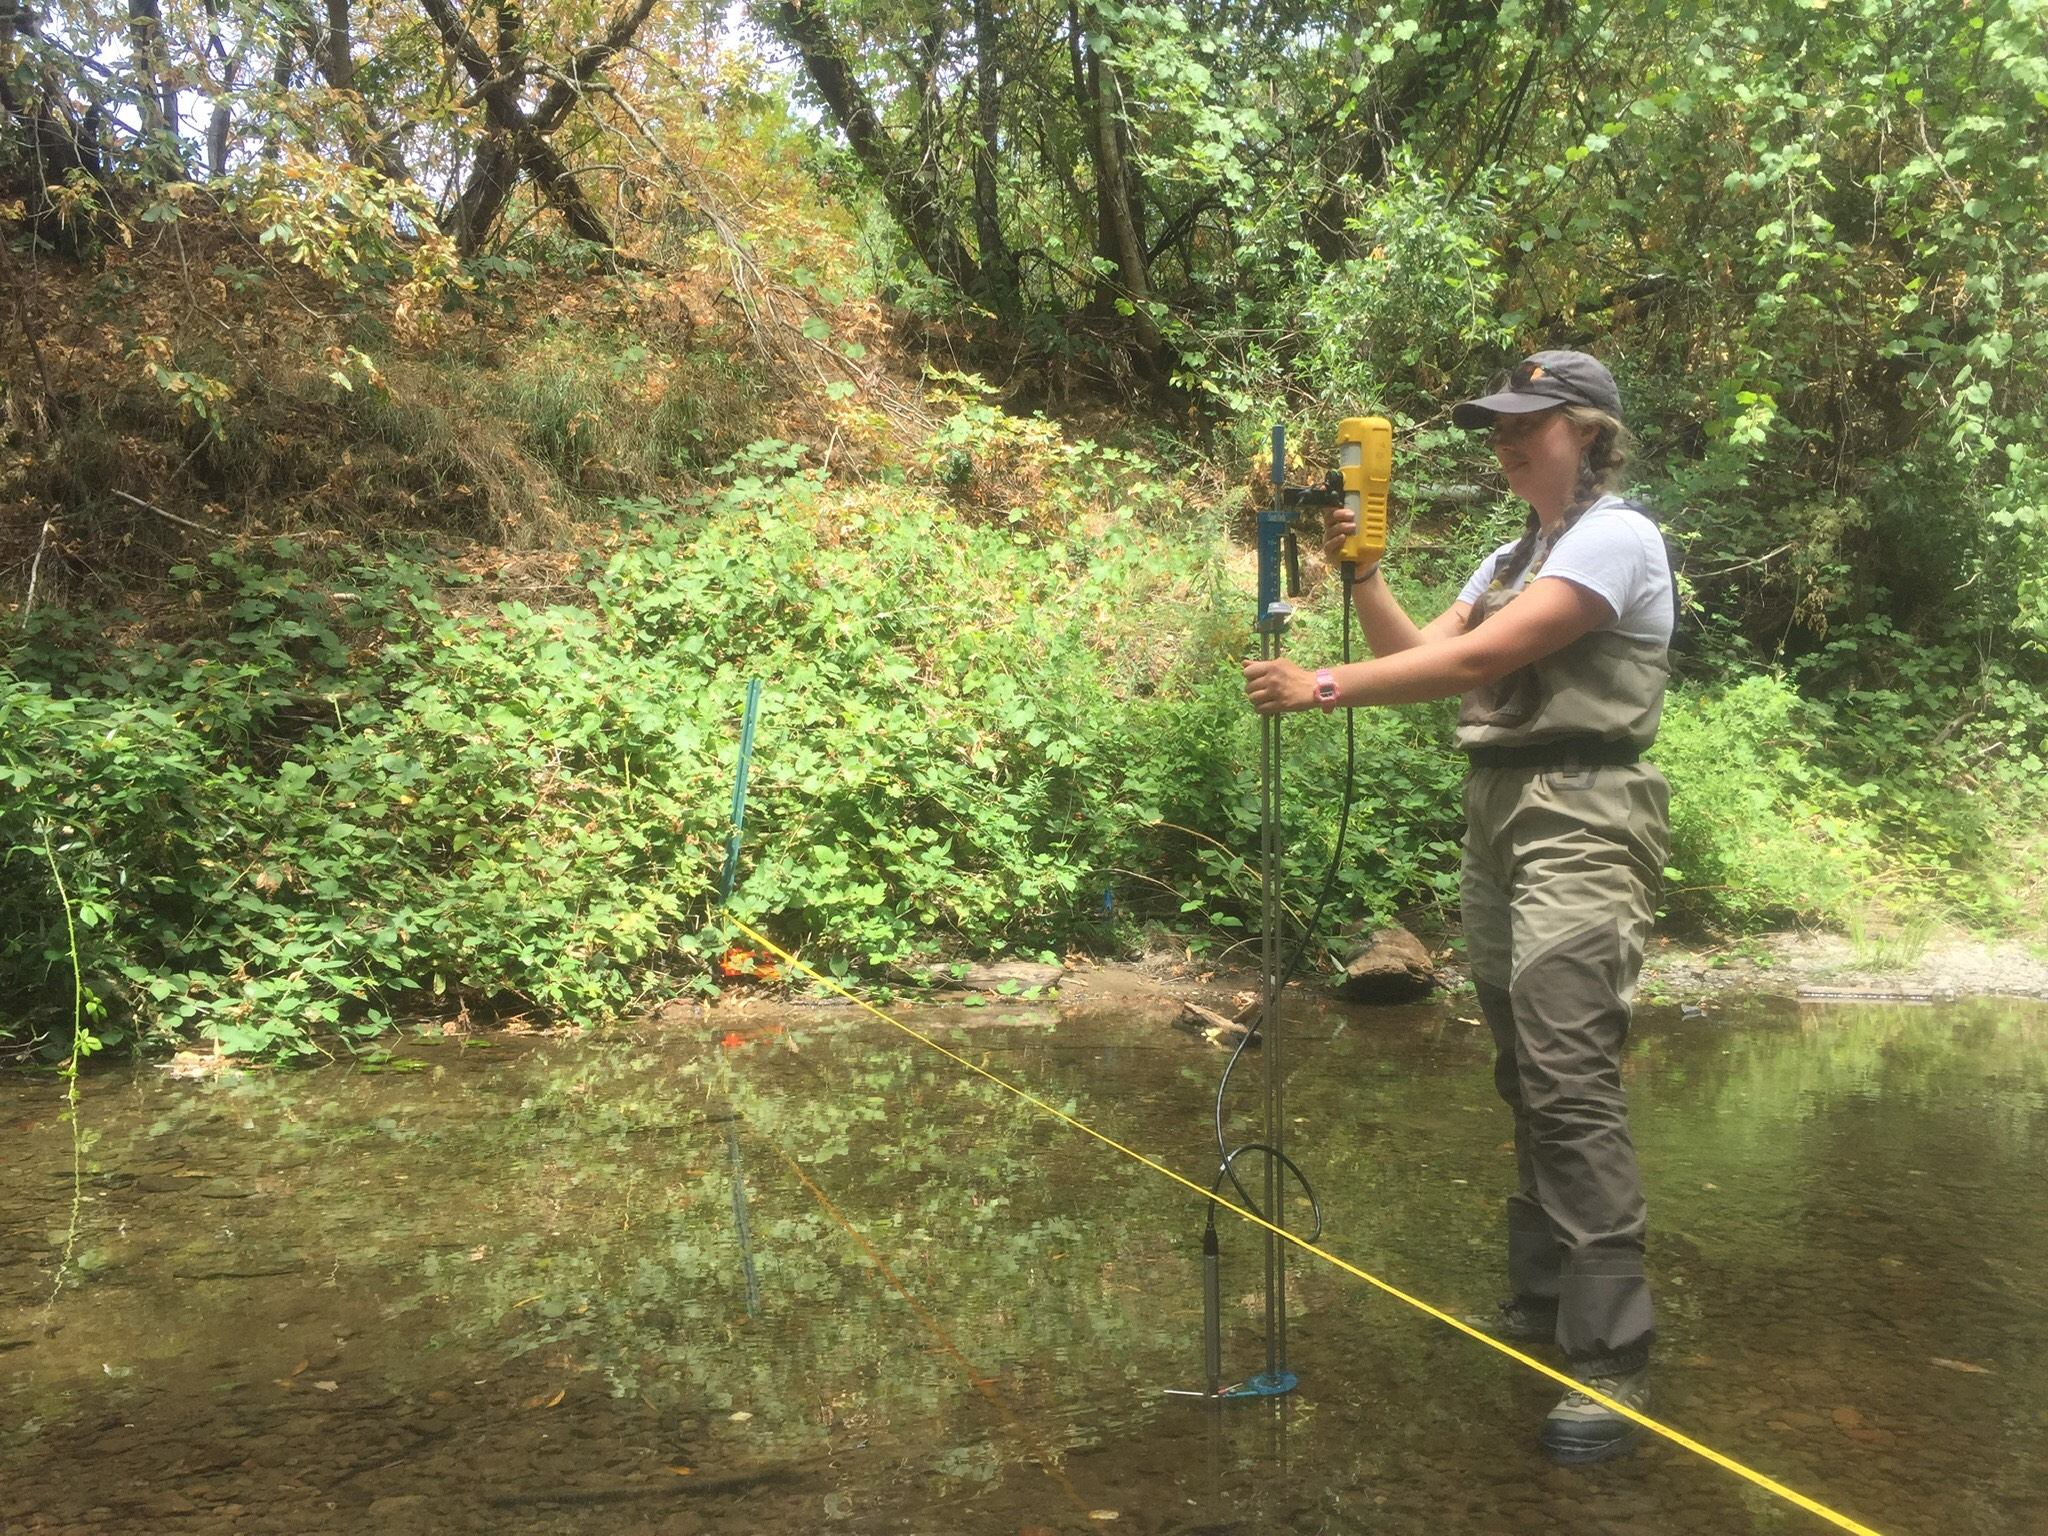 Measuring the discharge on Mill Creek. Summer base flows here are commonly less than one cubic foot per second. It's amazing how little water it takes to keep things flowing and salmon and steelhead alive in these small streams! Photo by Weston Slaughter.